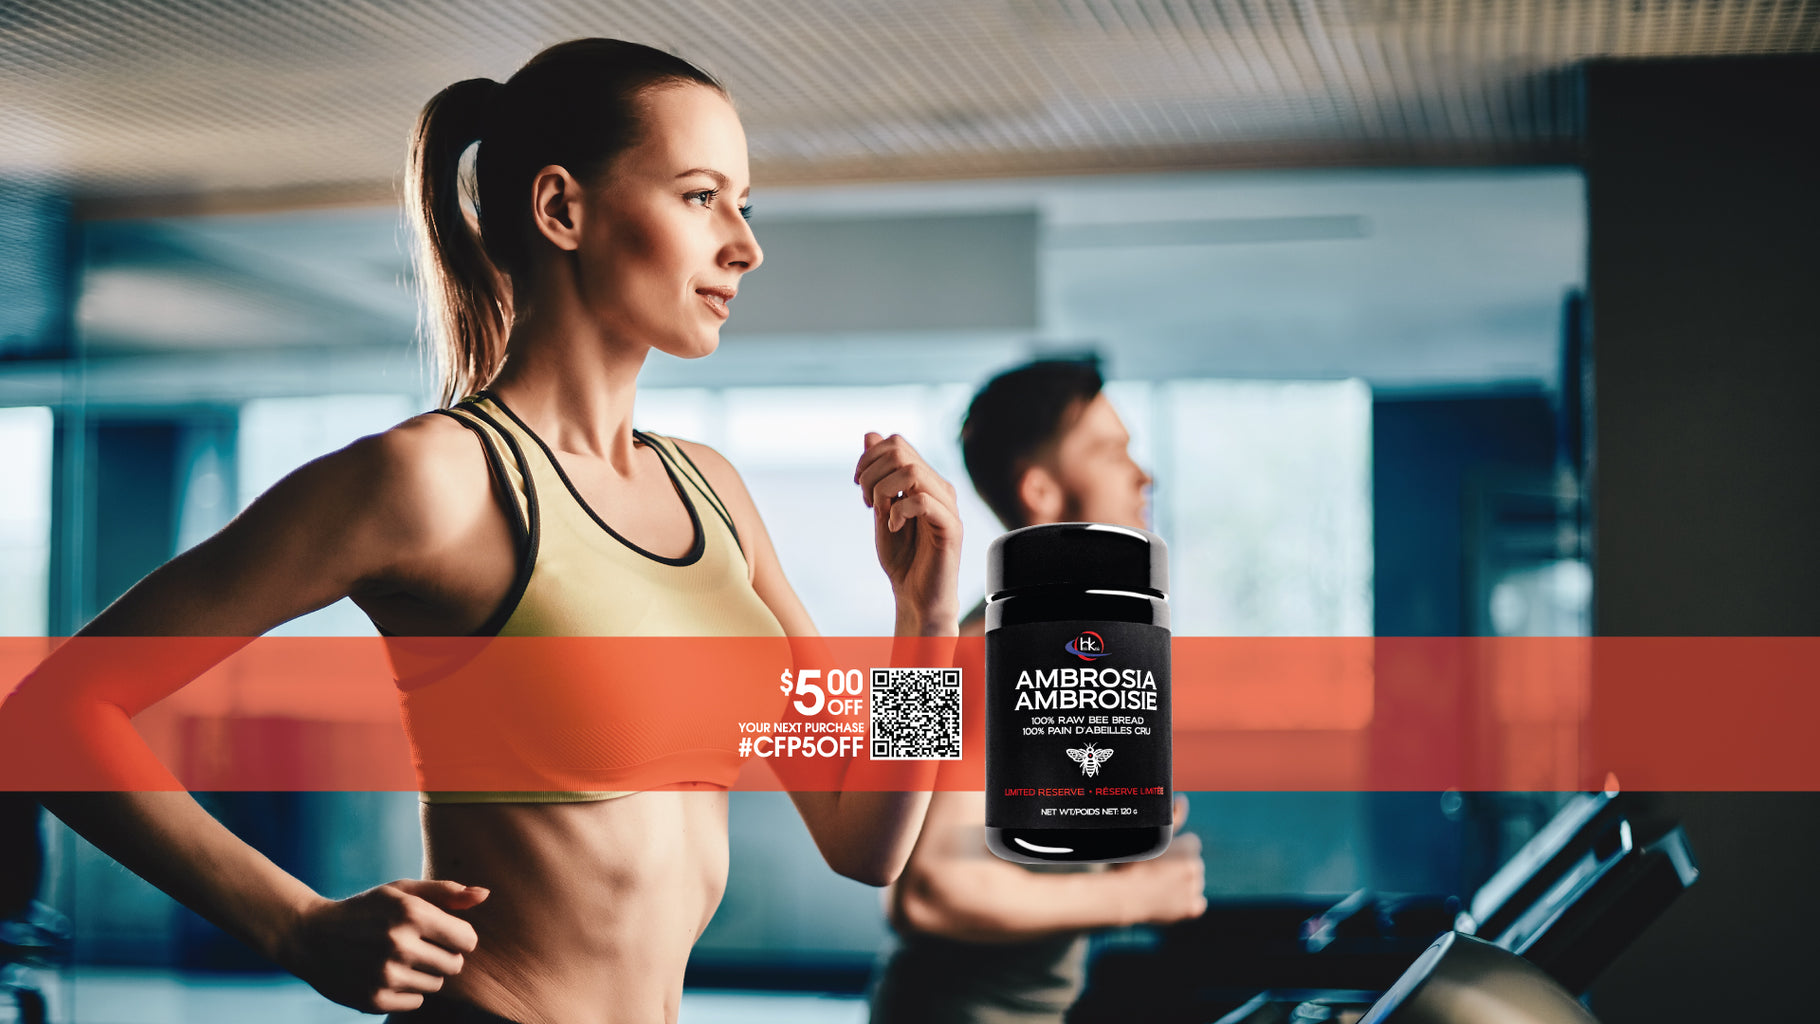 Get Coupon of CanFitPro Magazine for your next purchase!